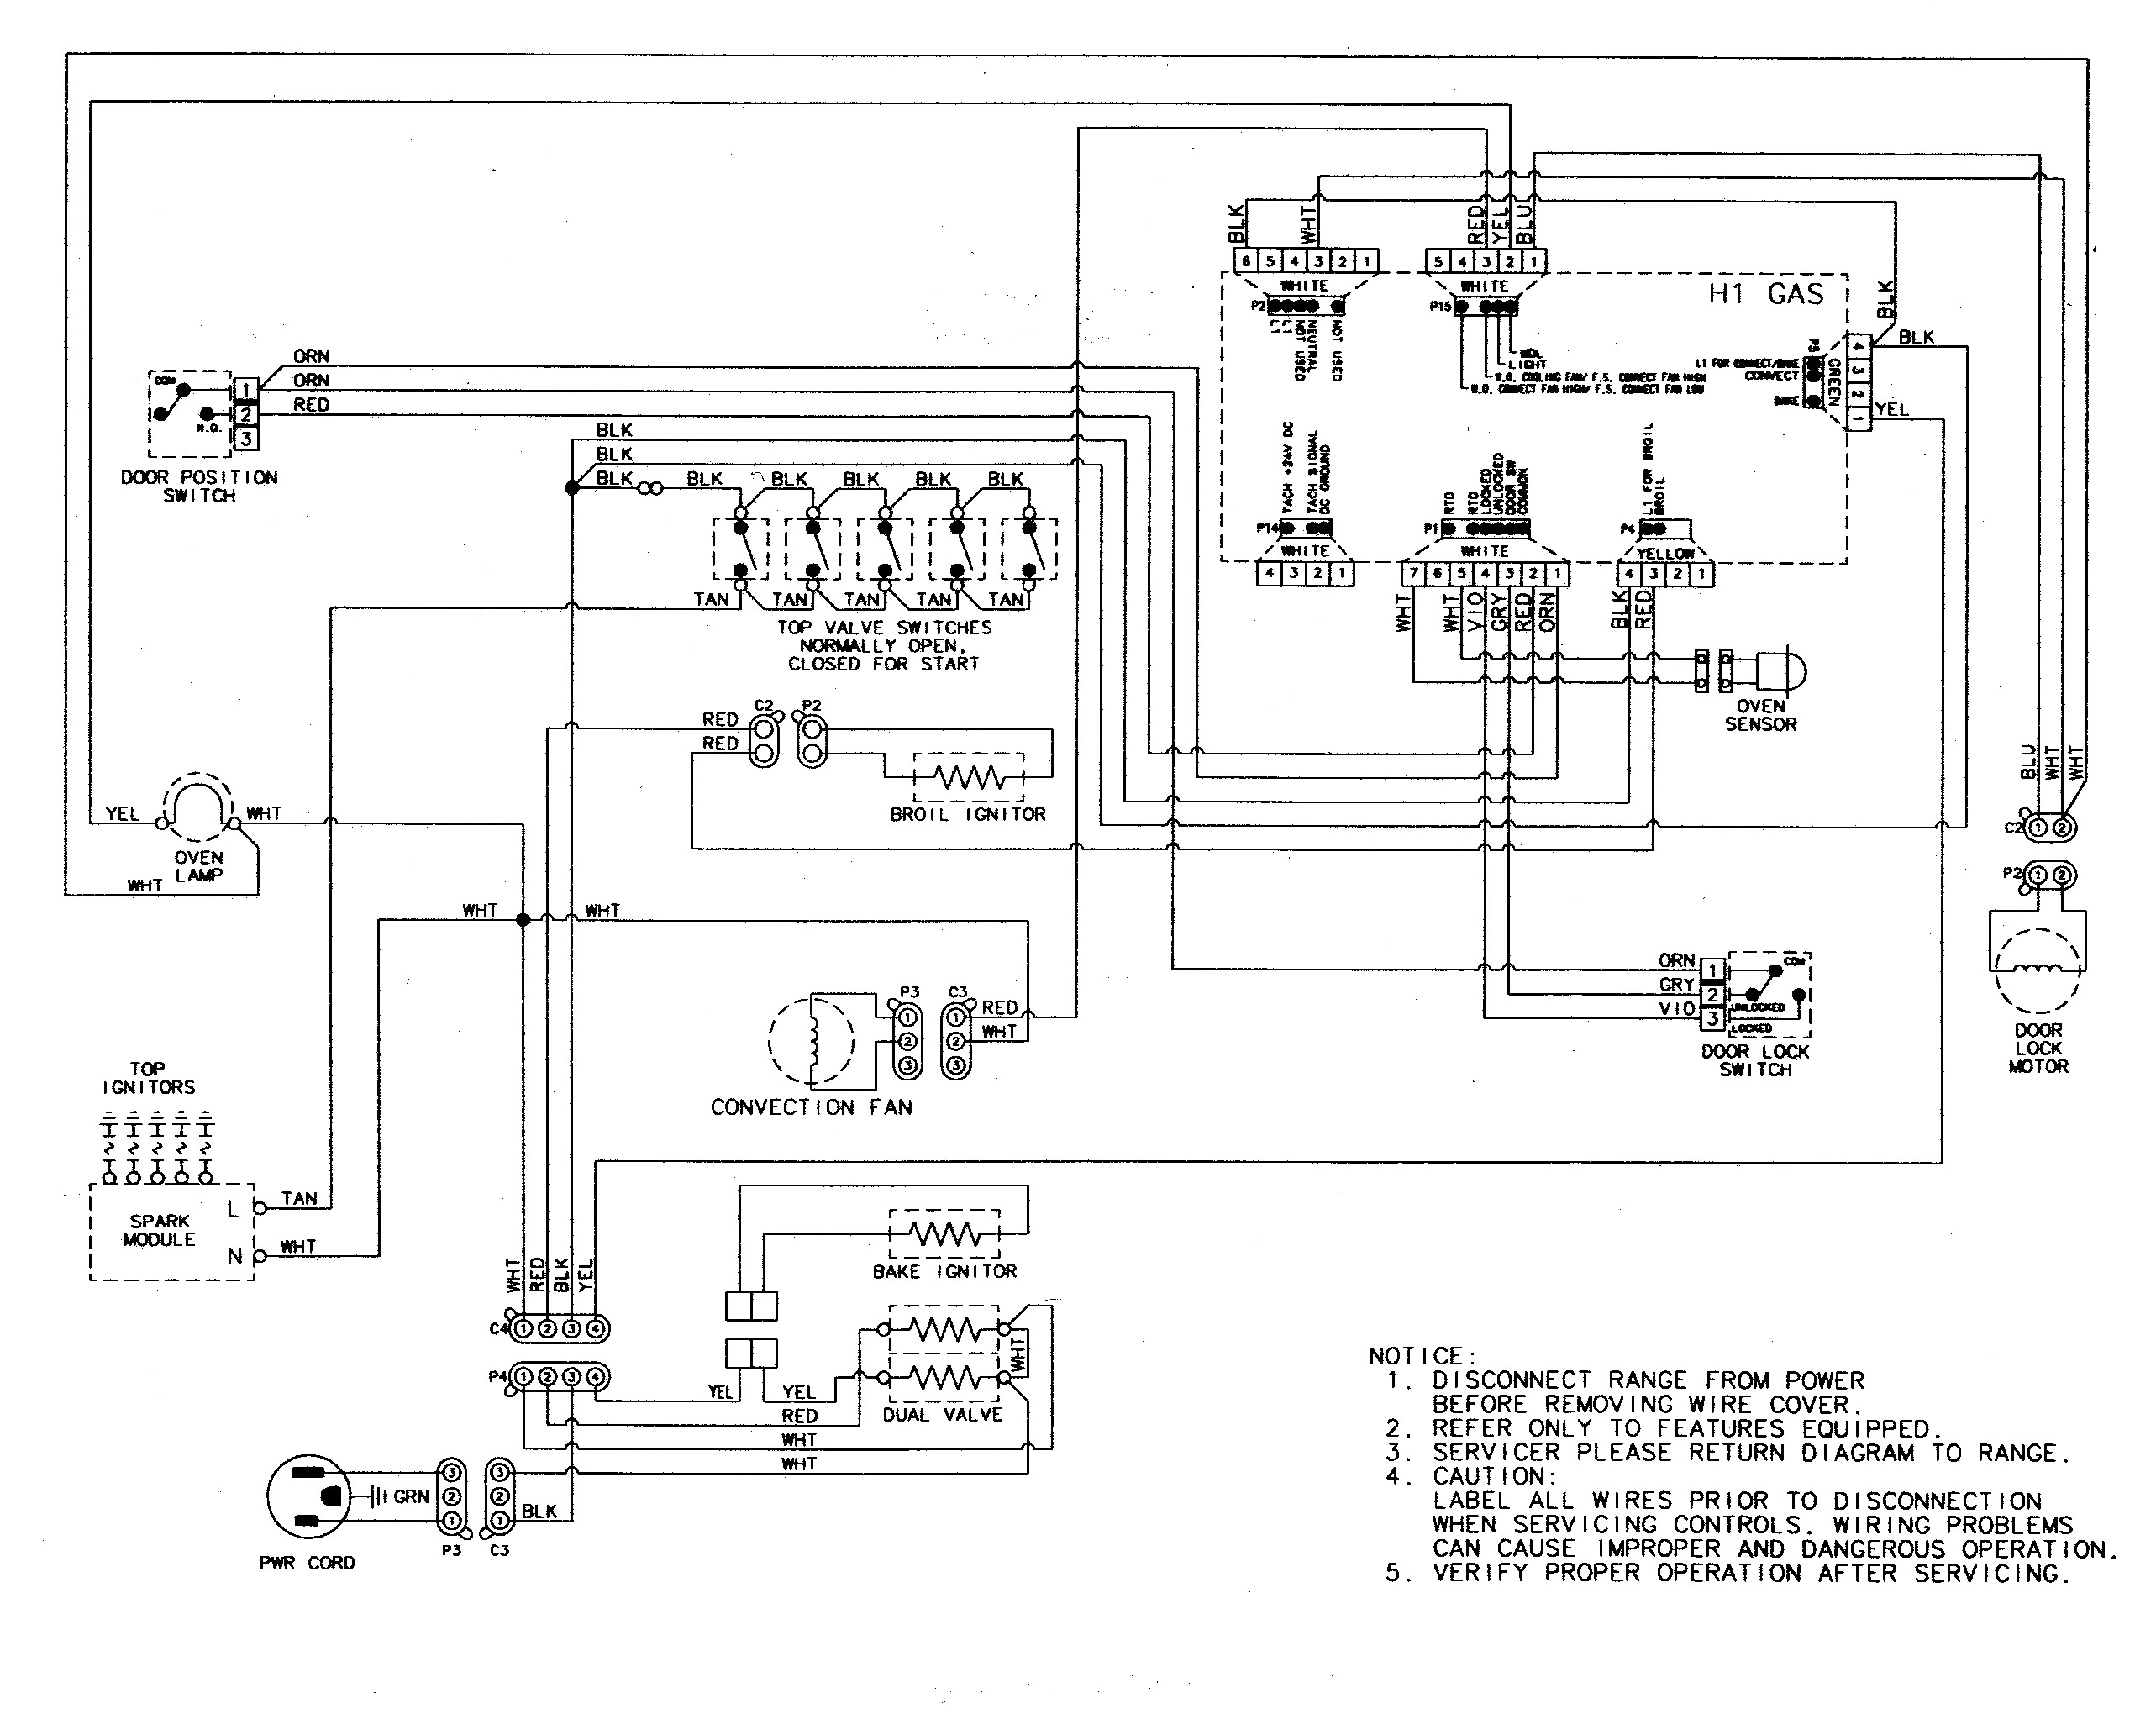 whirlpool electric dryer schematic